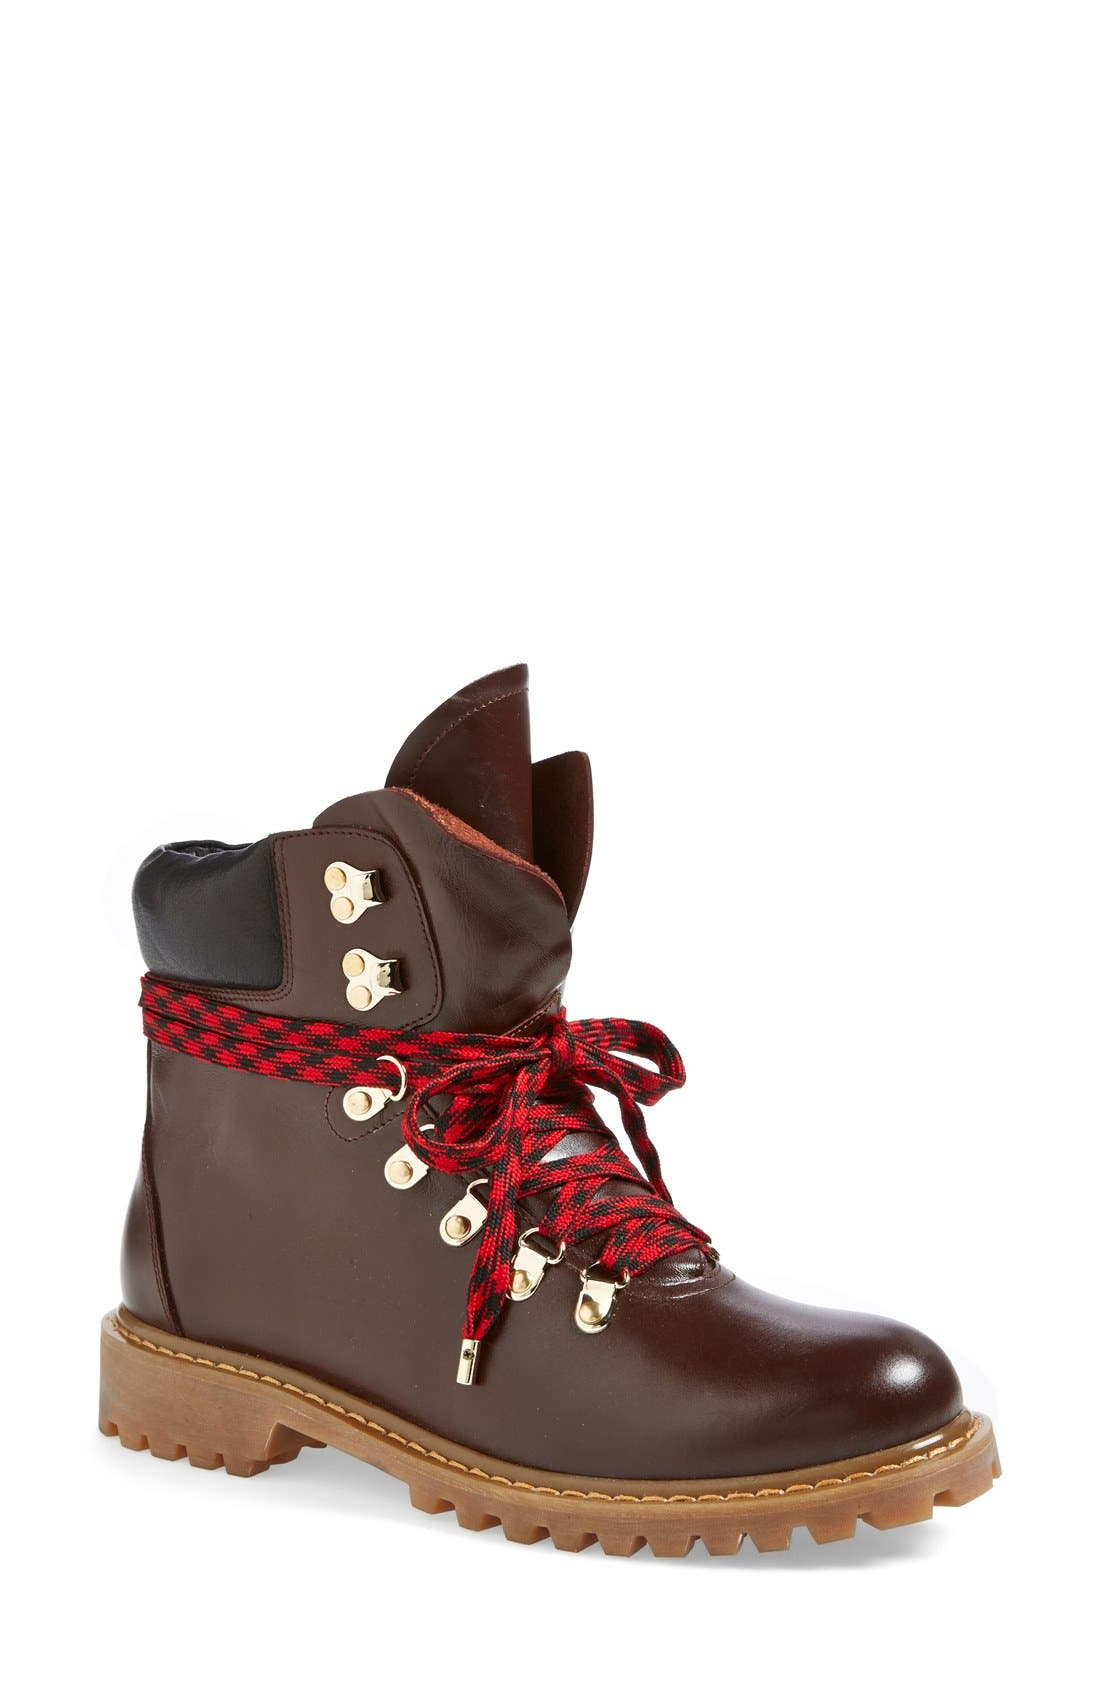 Main Image - Joie 'Norfolk' Leather Boot (Women)